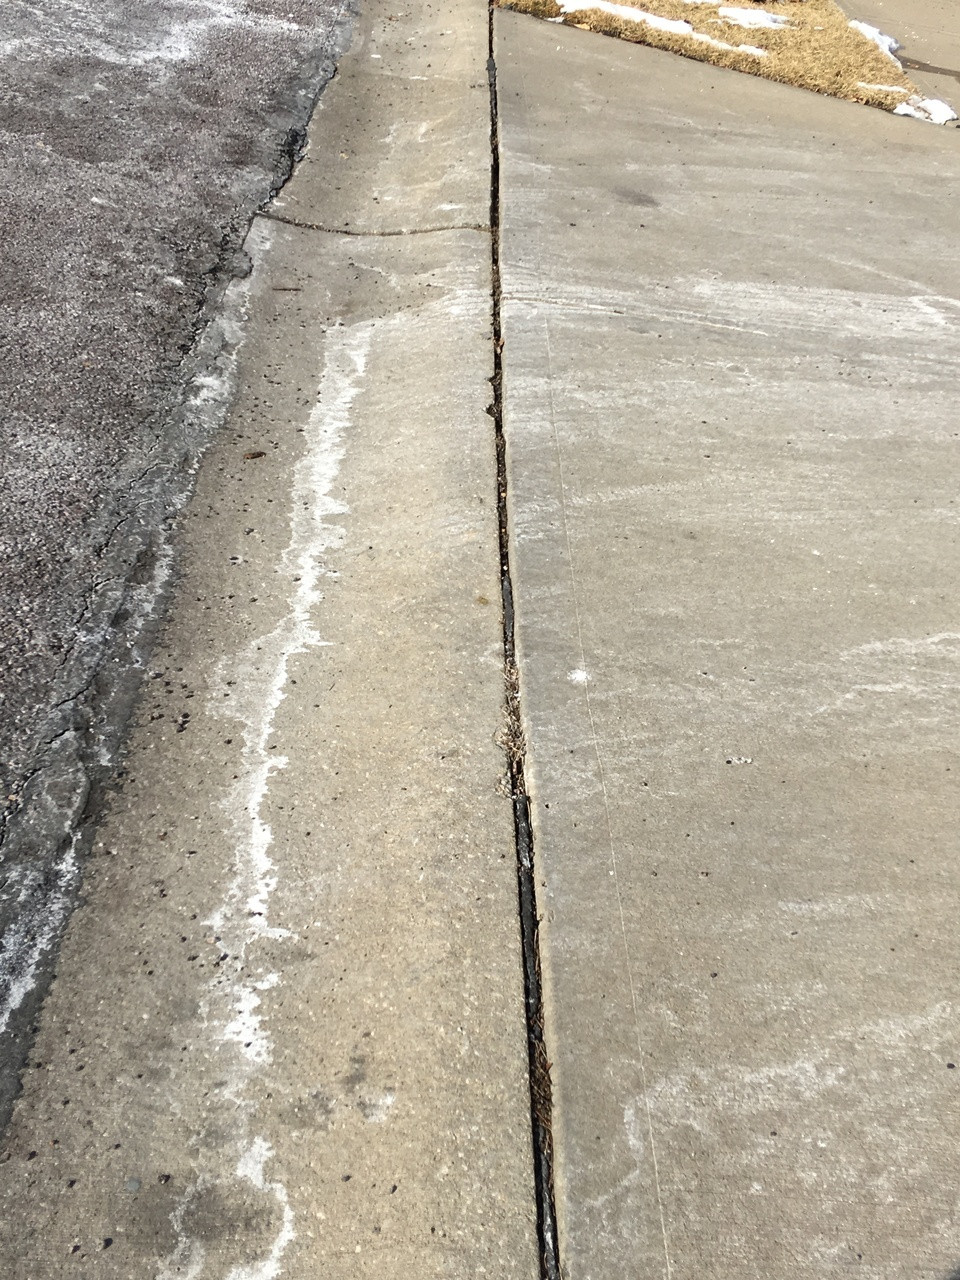 Open expansion joint allowing water to penetrate under the concrete slab